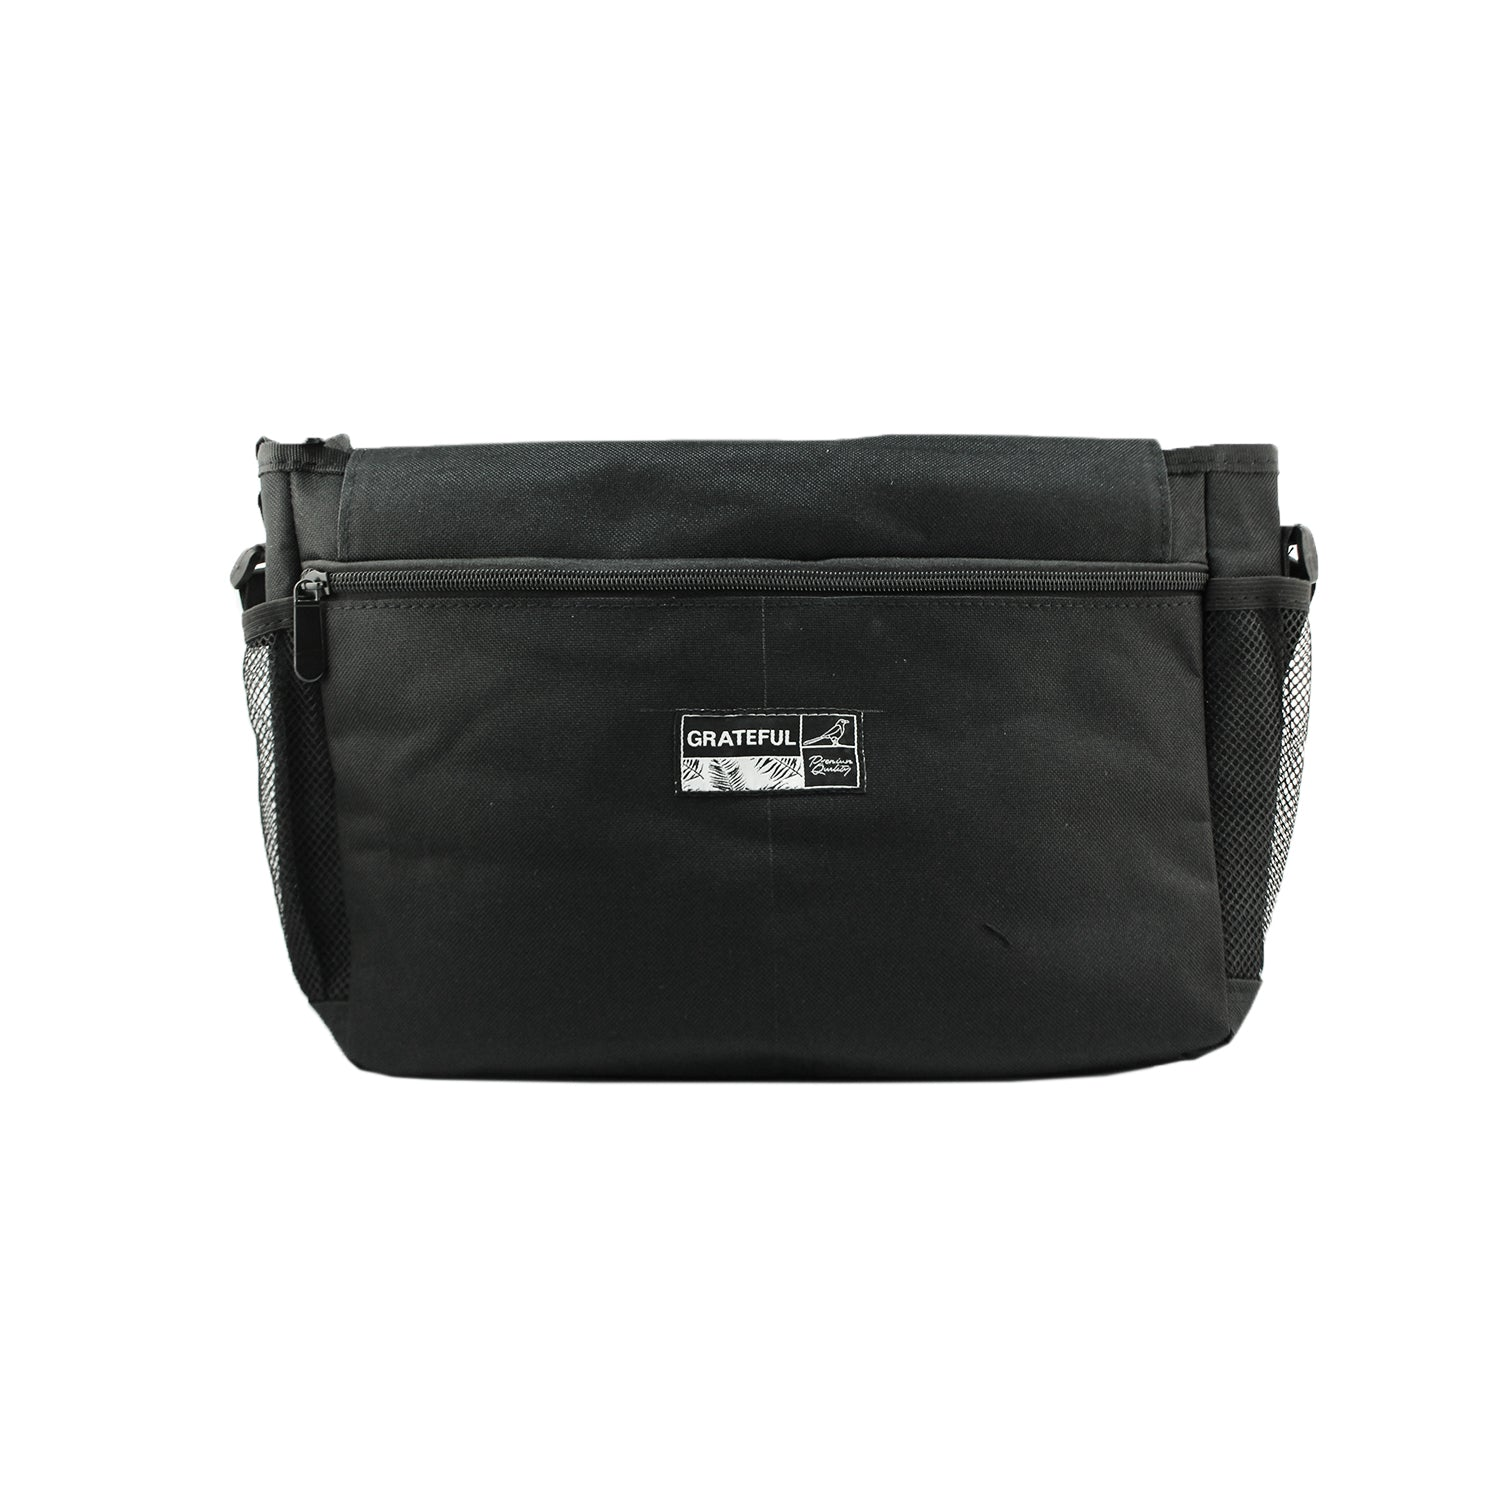 Black Grateful Shoulder Bag